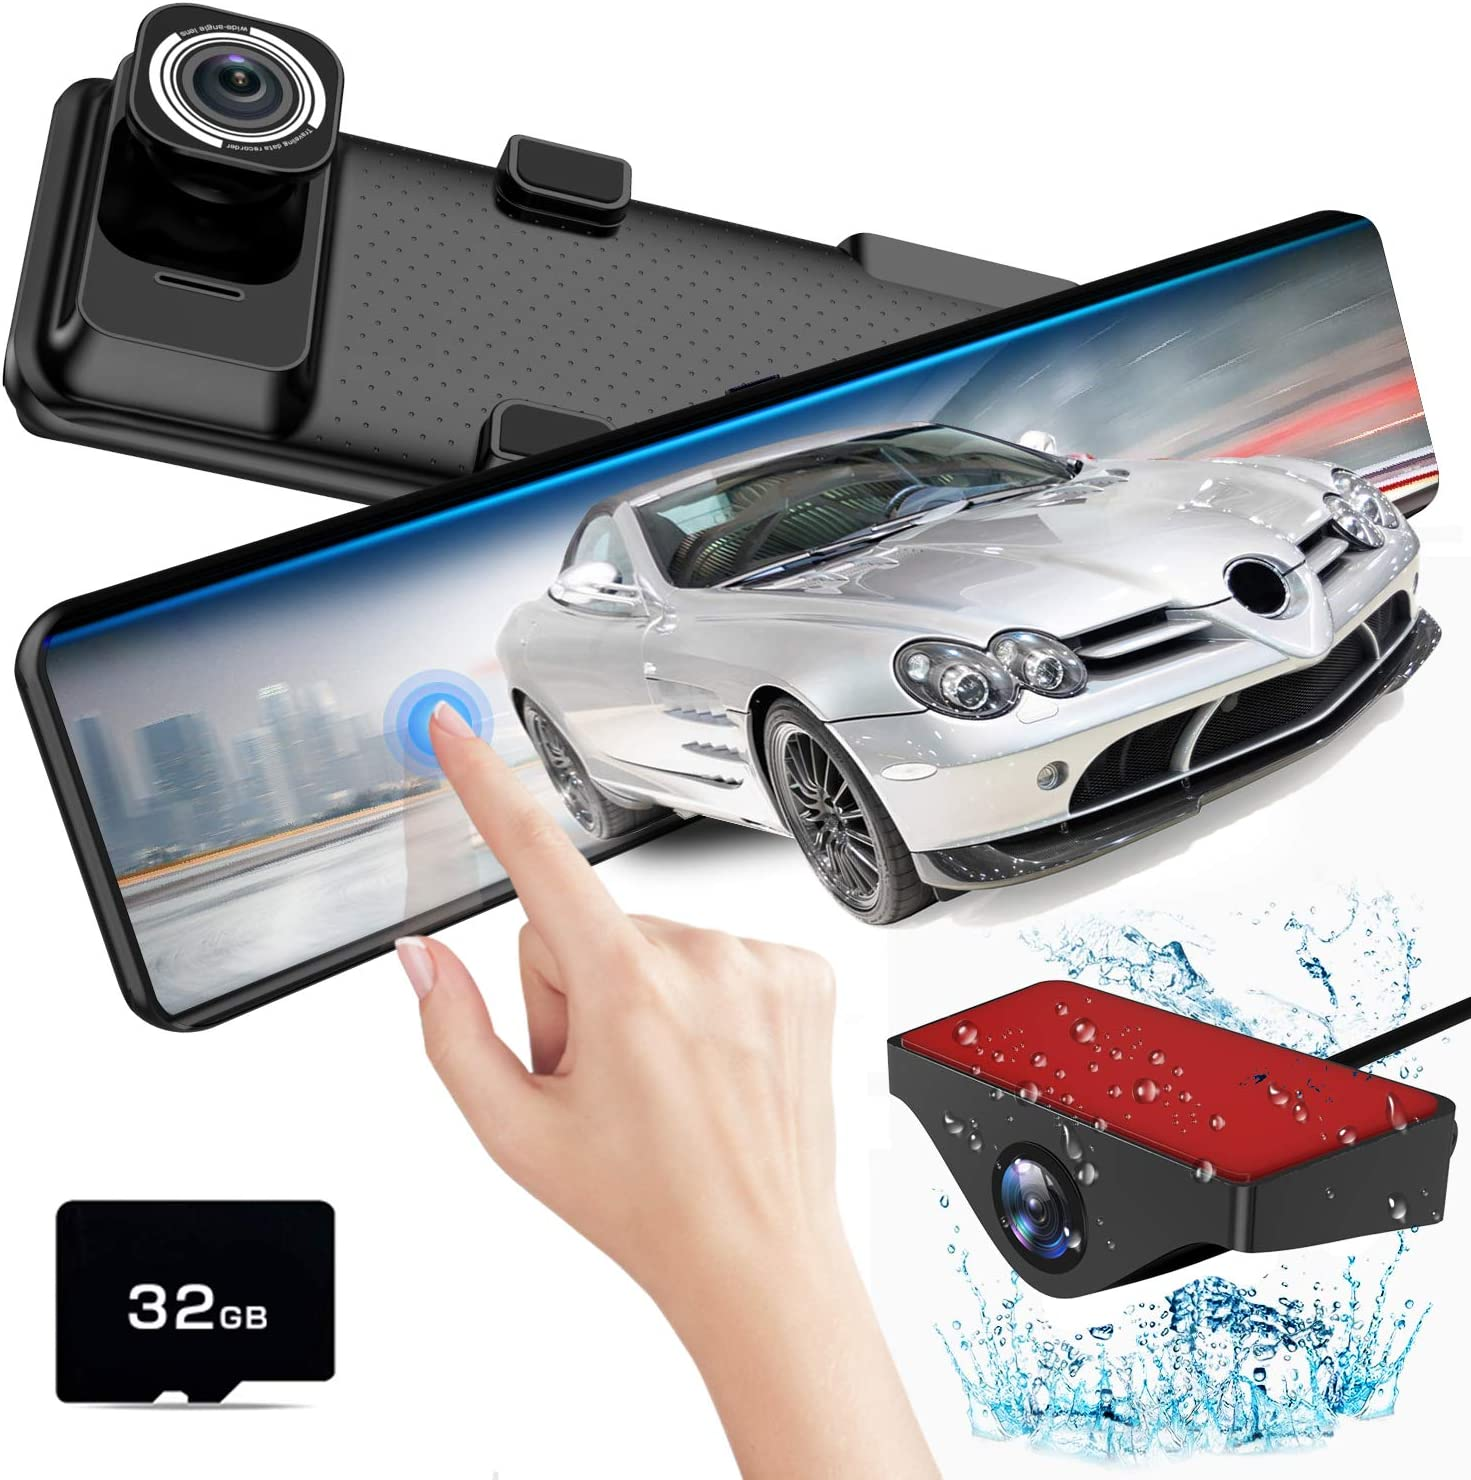 "AKEEYO X2 Mirror Dash Cam for Cars 12"" IPS Touch Screen FHD 1080P Front and Rear Dash Camera with HDR, Night Vision, Parking Monitor, Reverse Image, G-Sensor, Loop Recording"